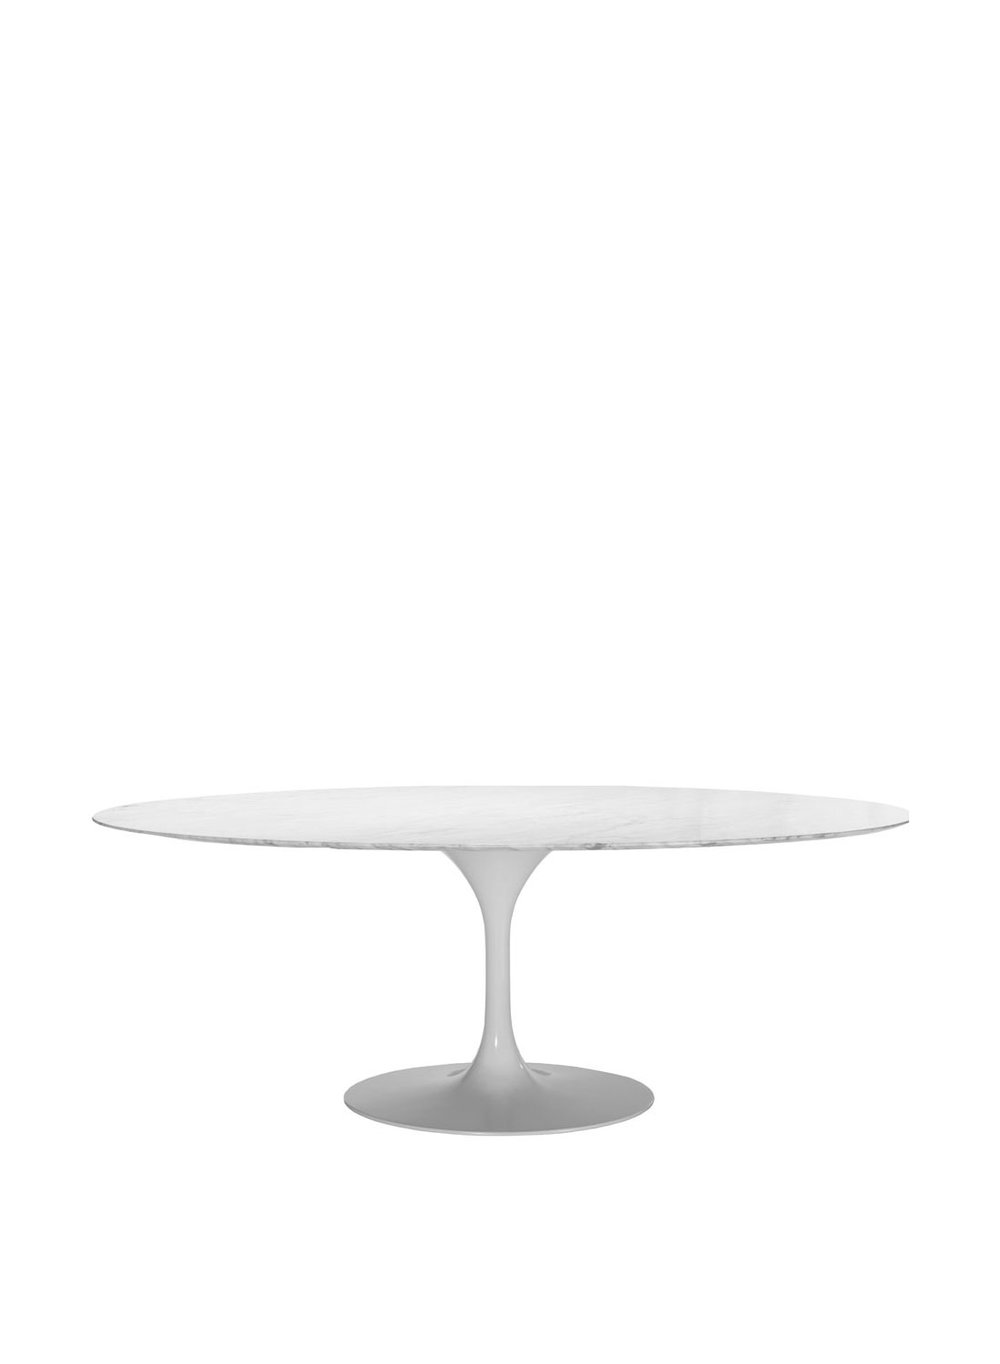 Saarinen Style Oval Dining Table White Laminate Cm Diameter - Saarinen table white laminate